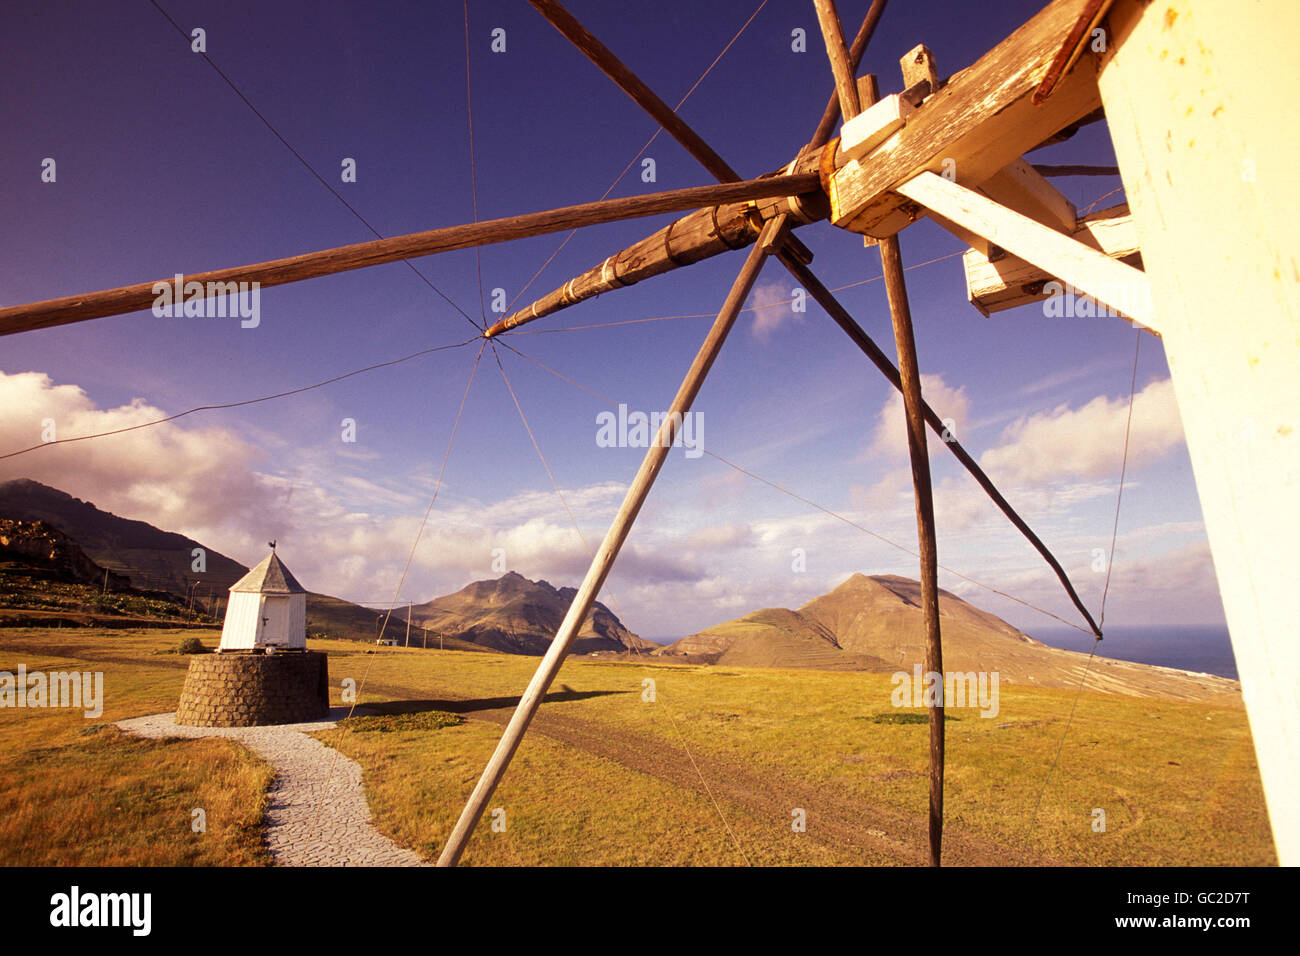 a traditional wind mill on the Island of Porto Santo ot the Madeira Islands in the Atlantic Ocean of Portugal. - Stock Image